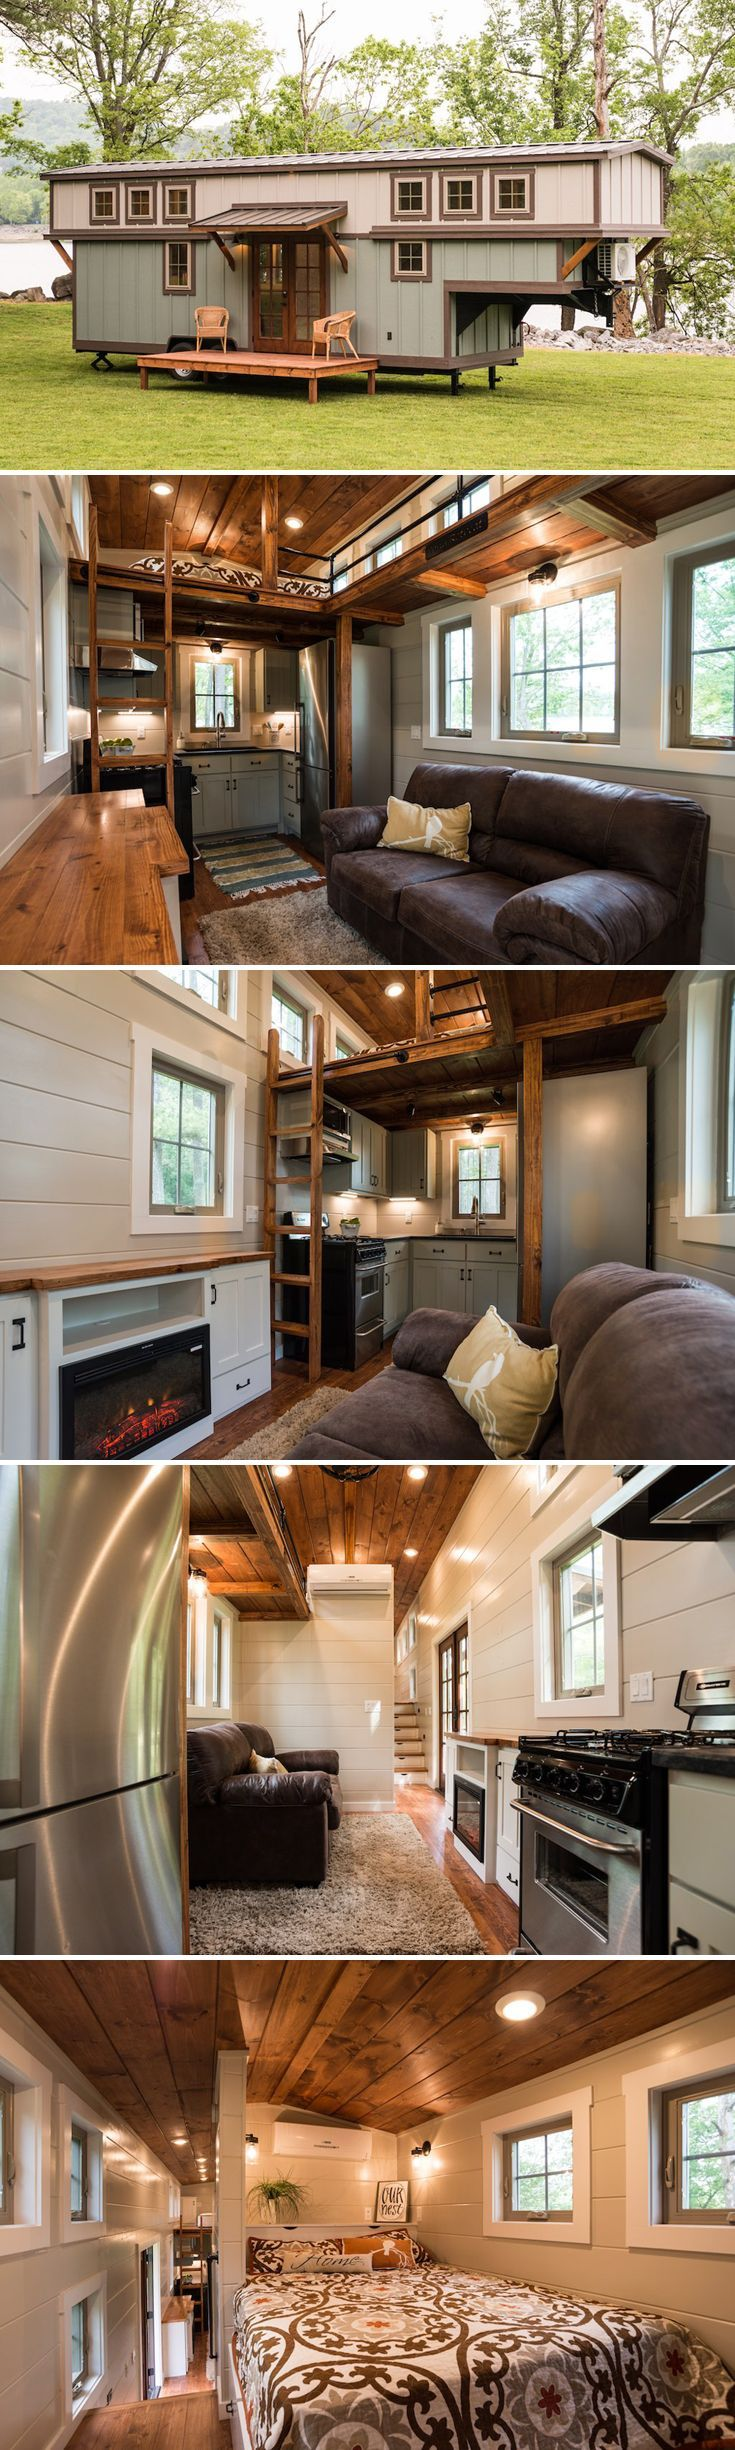 The Retreat is a luxurious 416-square-foot two bedroom gooseneck tiny house built by Timbercraft Tiny Homes in Guntersville, Alabama.